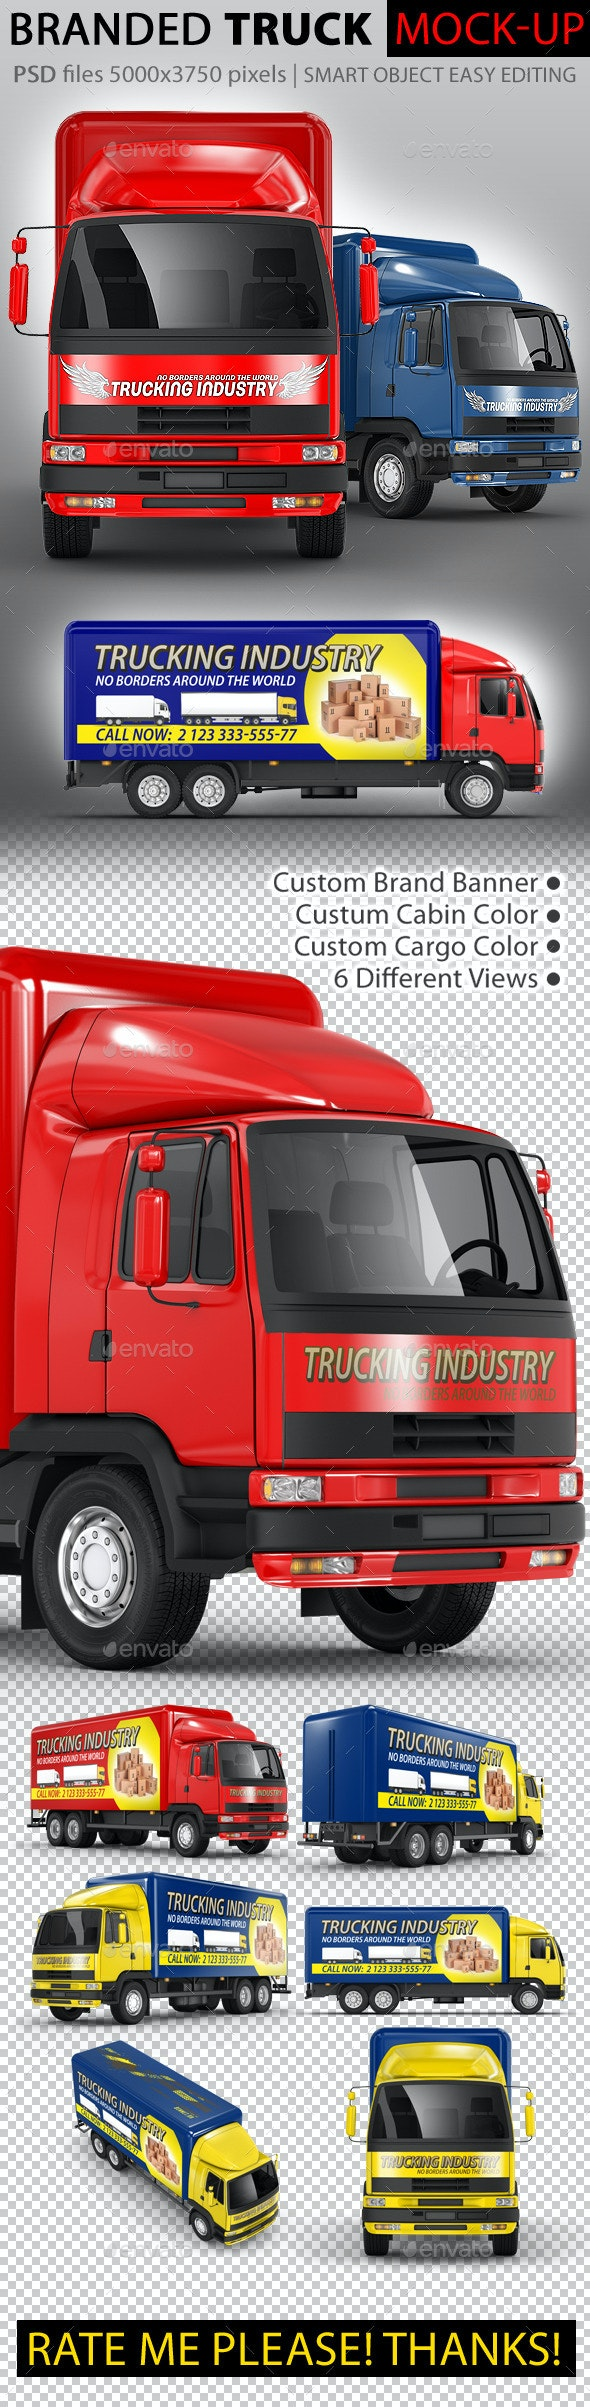 Commercial Truck Carrier Mock-Up - Vehicle Wraps Print